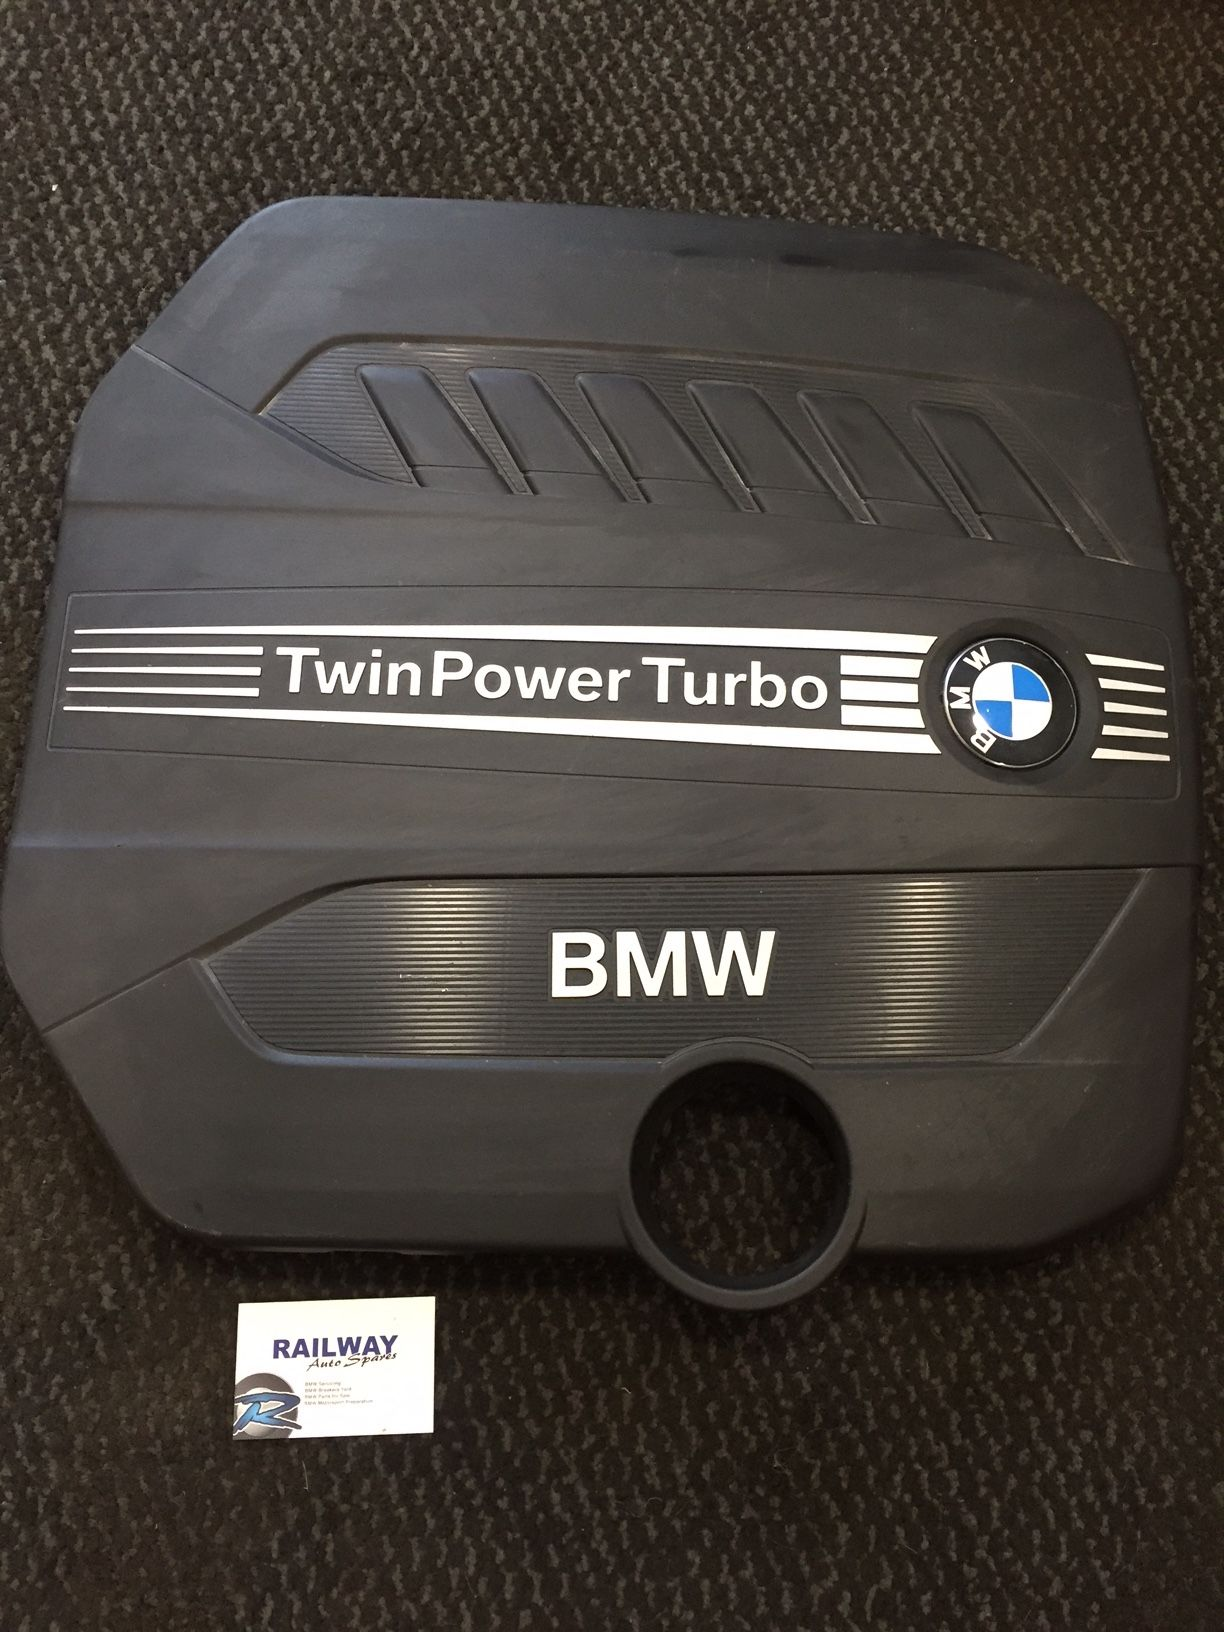 BMW F31 F30 12-18 435d 430d 335d 330d ENGINE COVER ACCOUSTIC COVER N57N  8511484 #17 *281